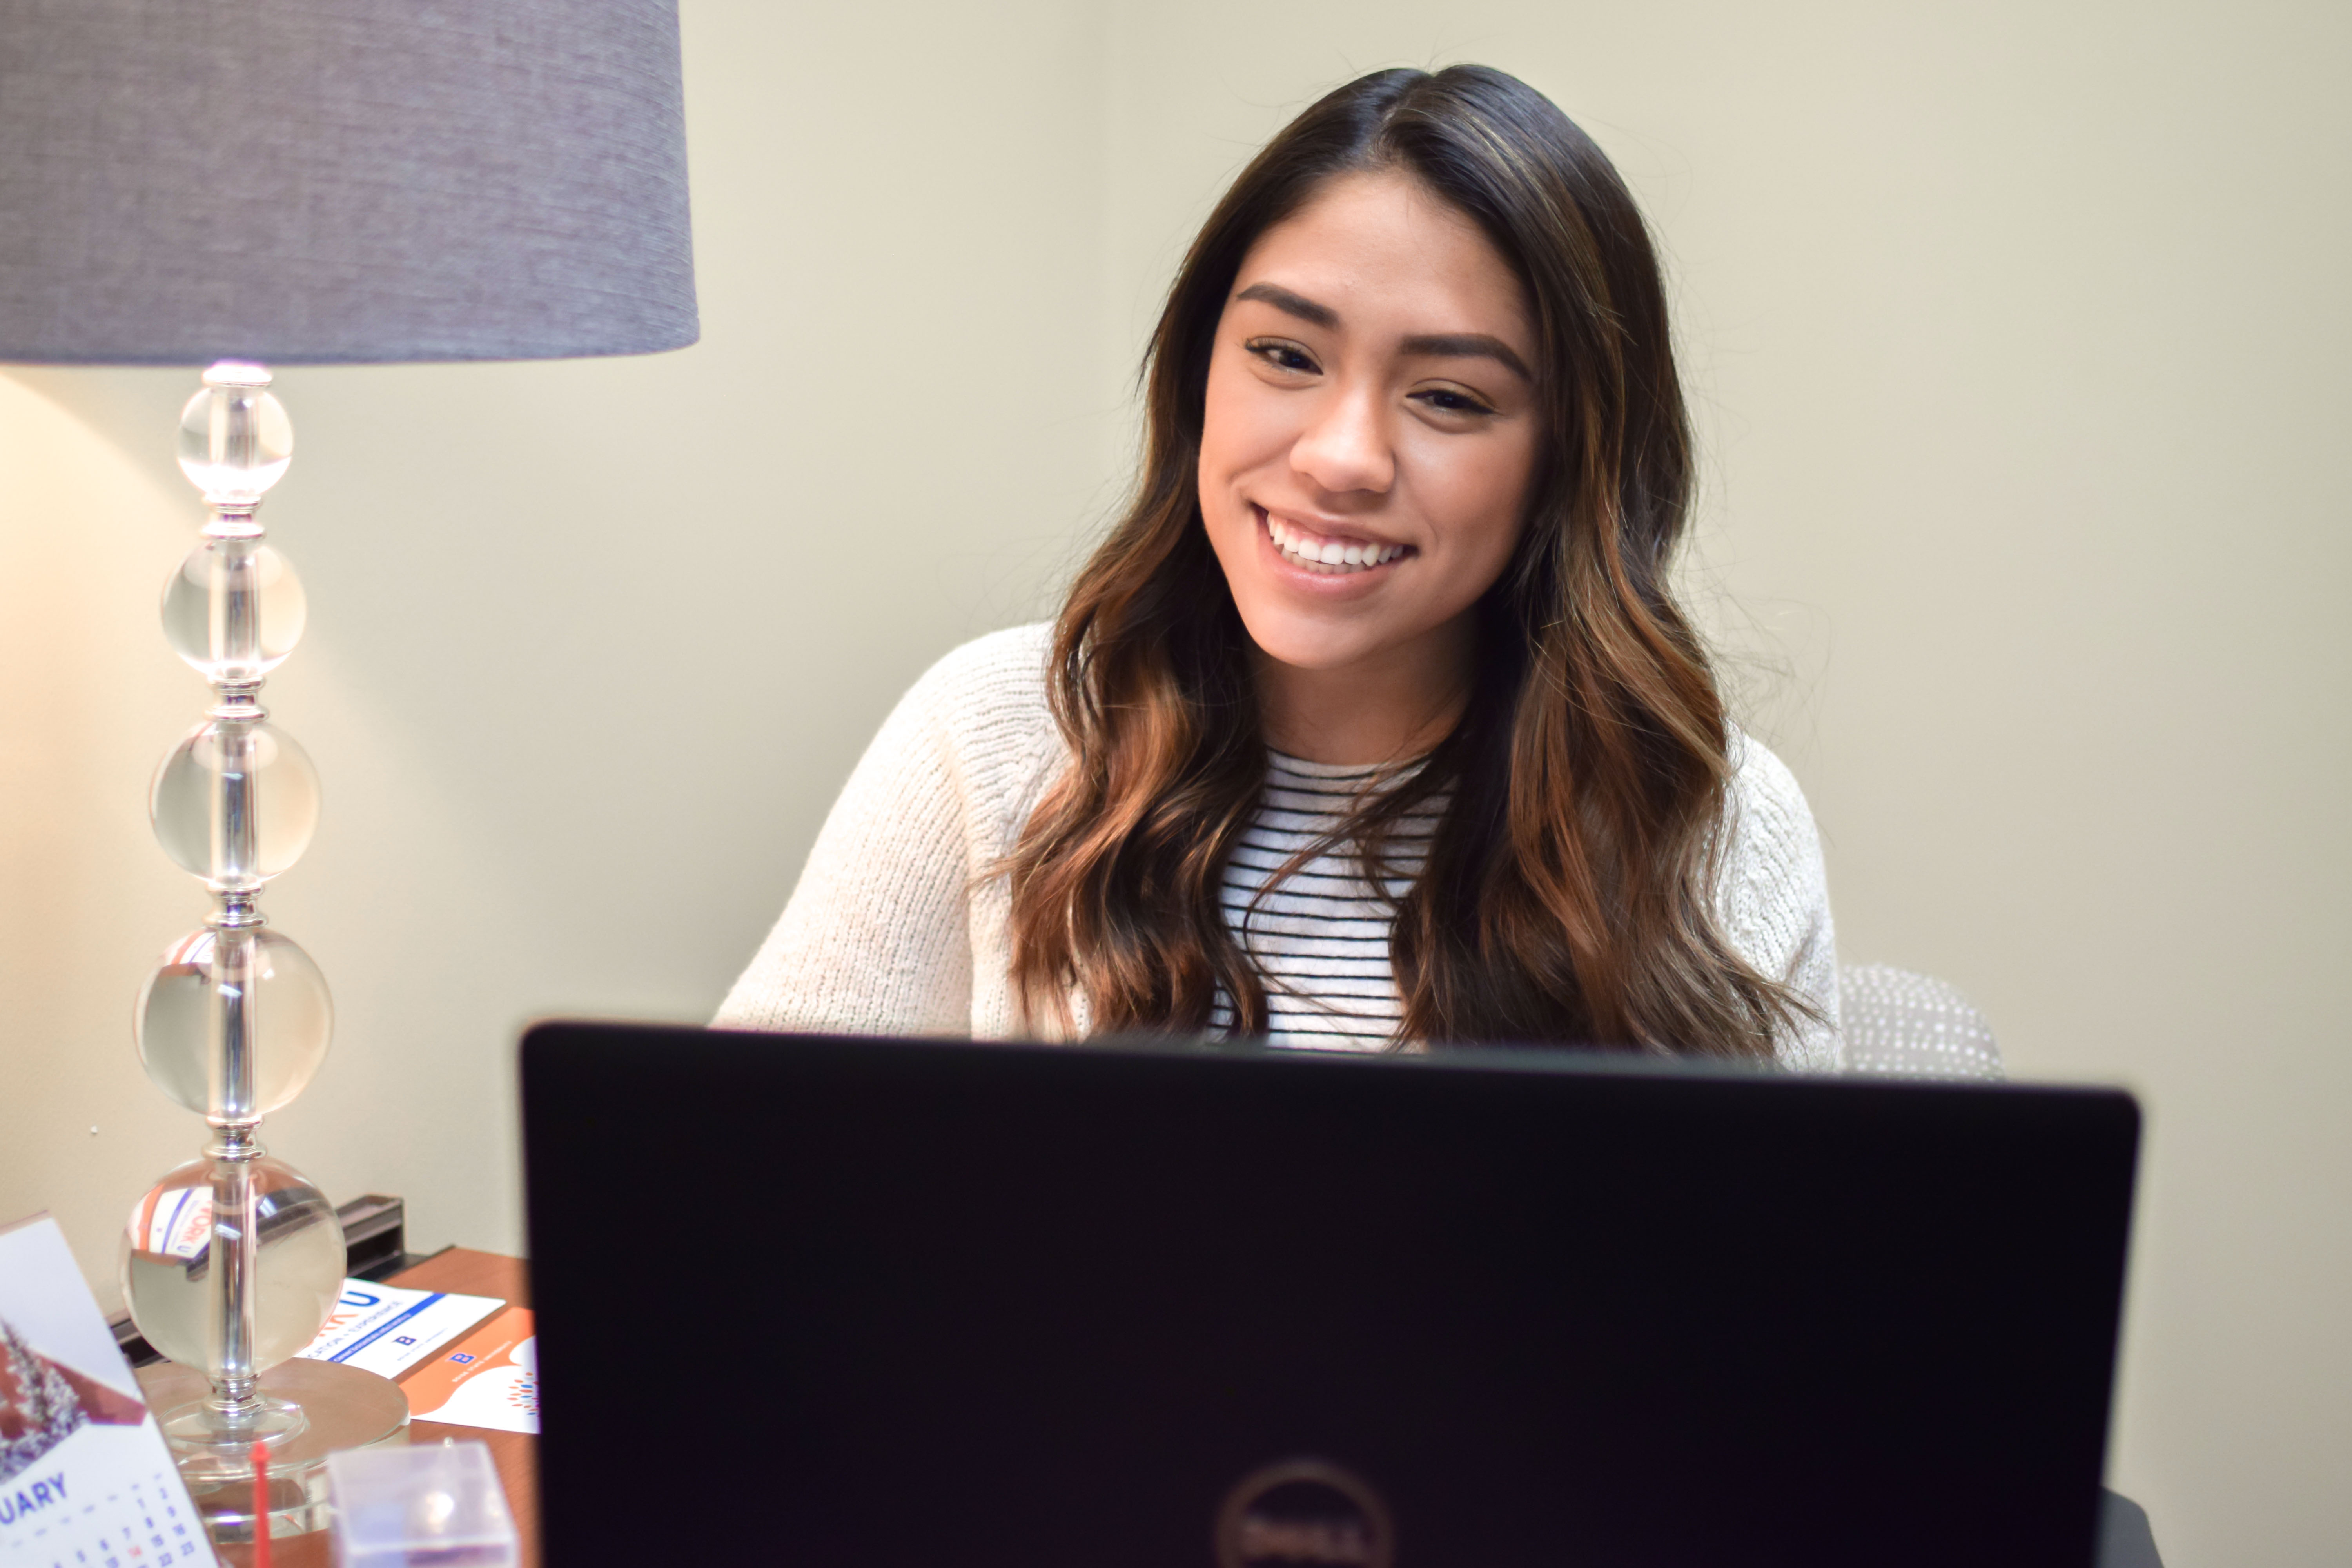 Student looking at laptop and smiling, participating in an online video appointment with a career counselor